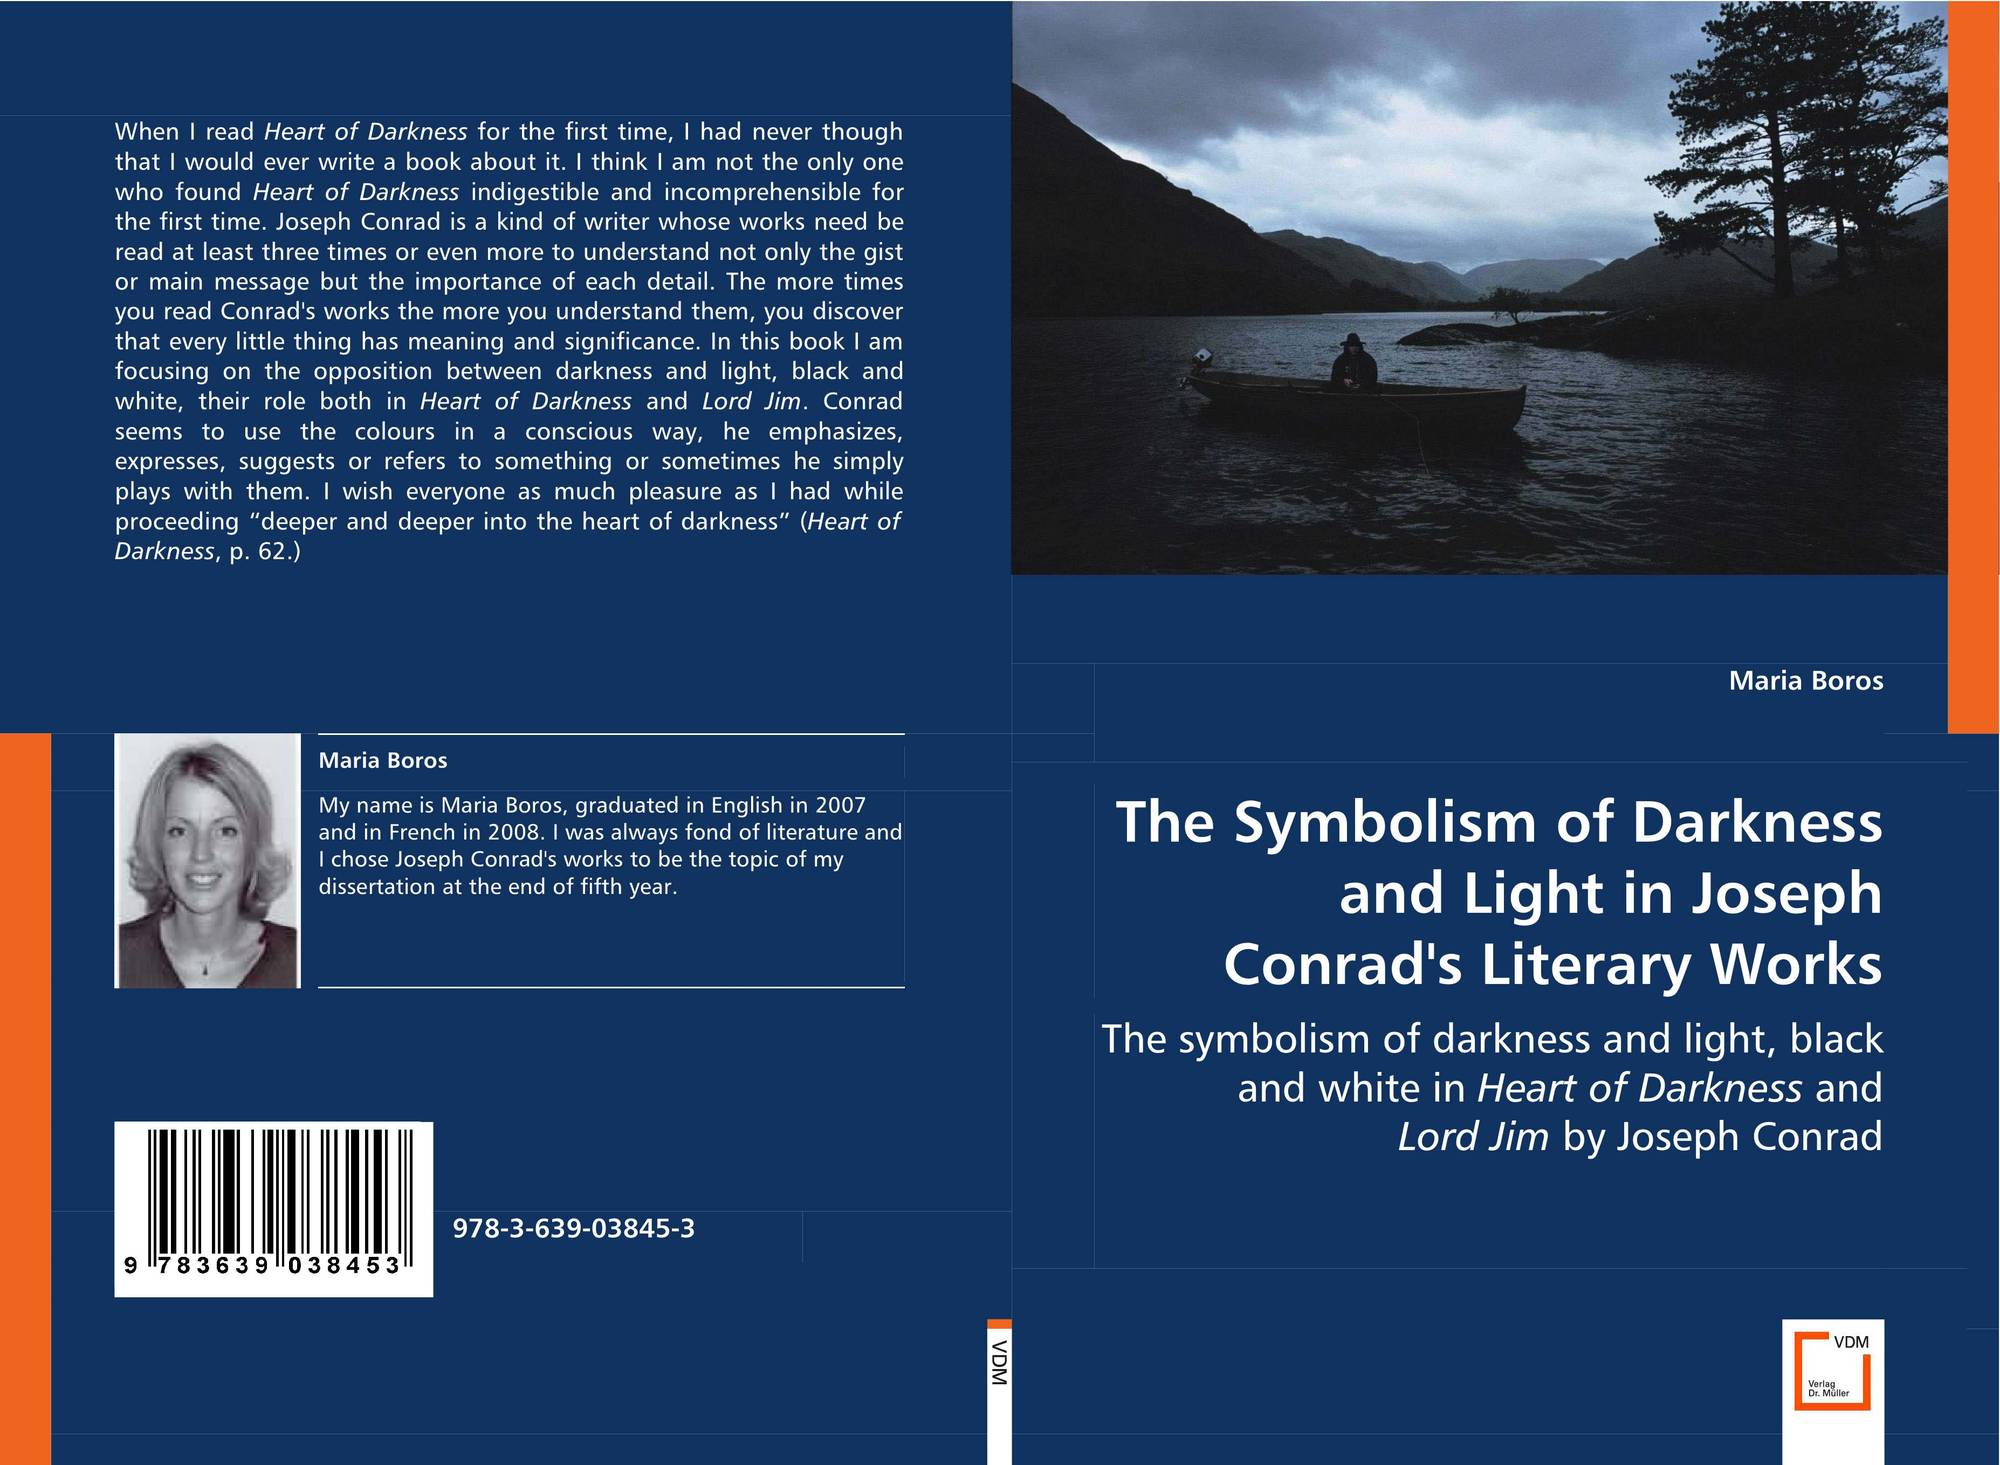 The Symbolism Of Darkness And Light In Joseph Conrads Literary